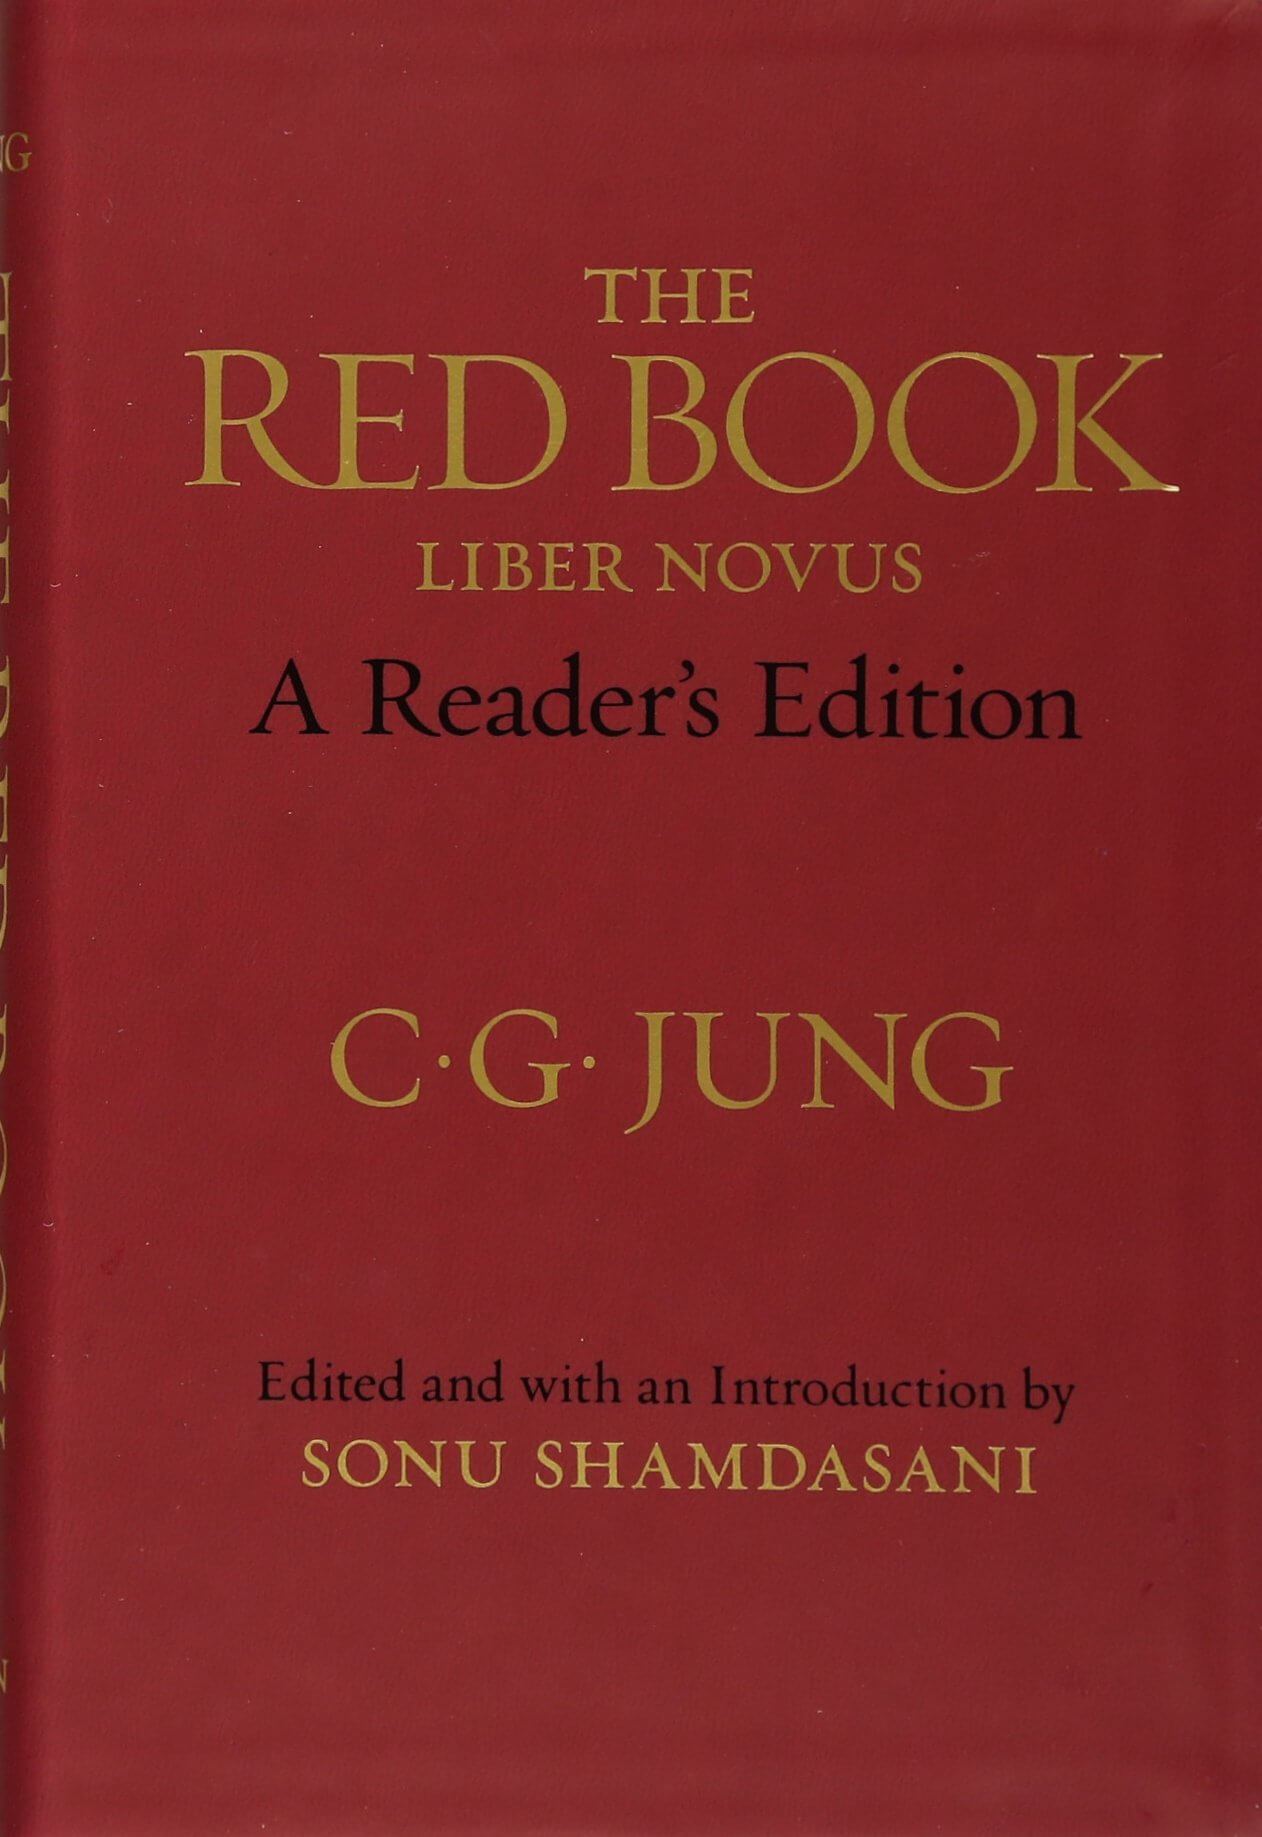 Red book - C.G. Jung